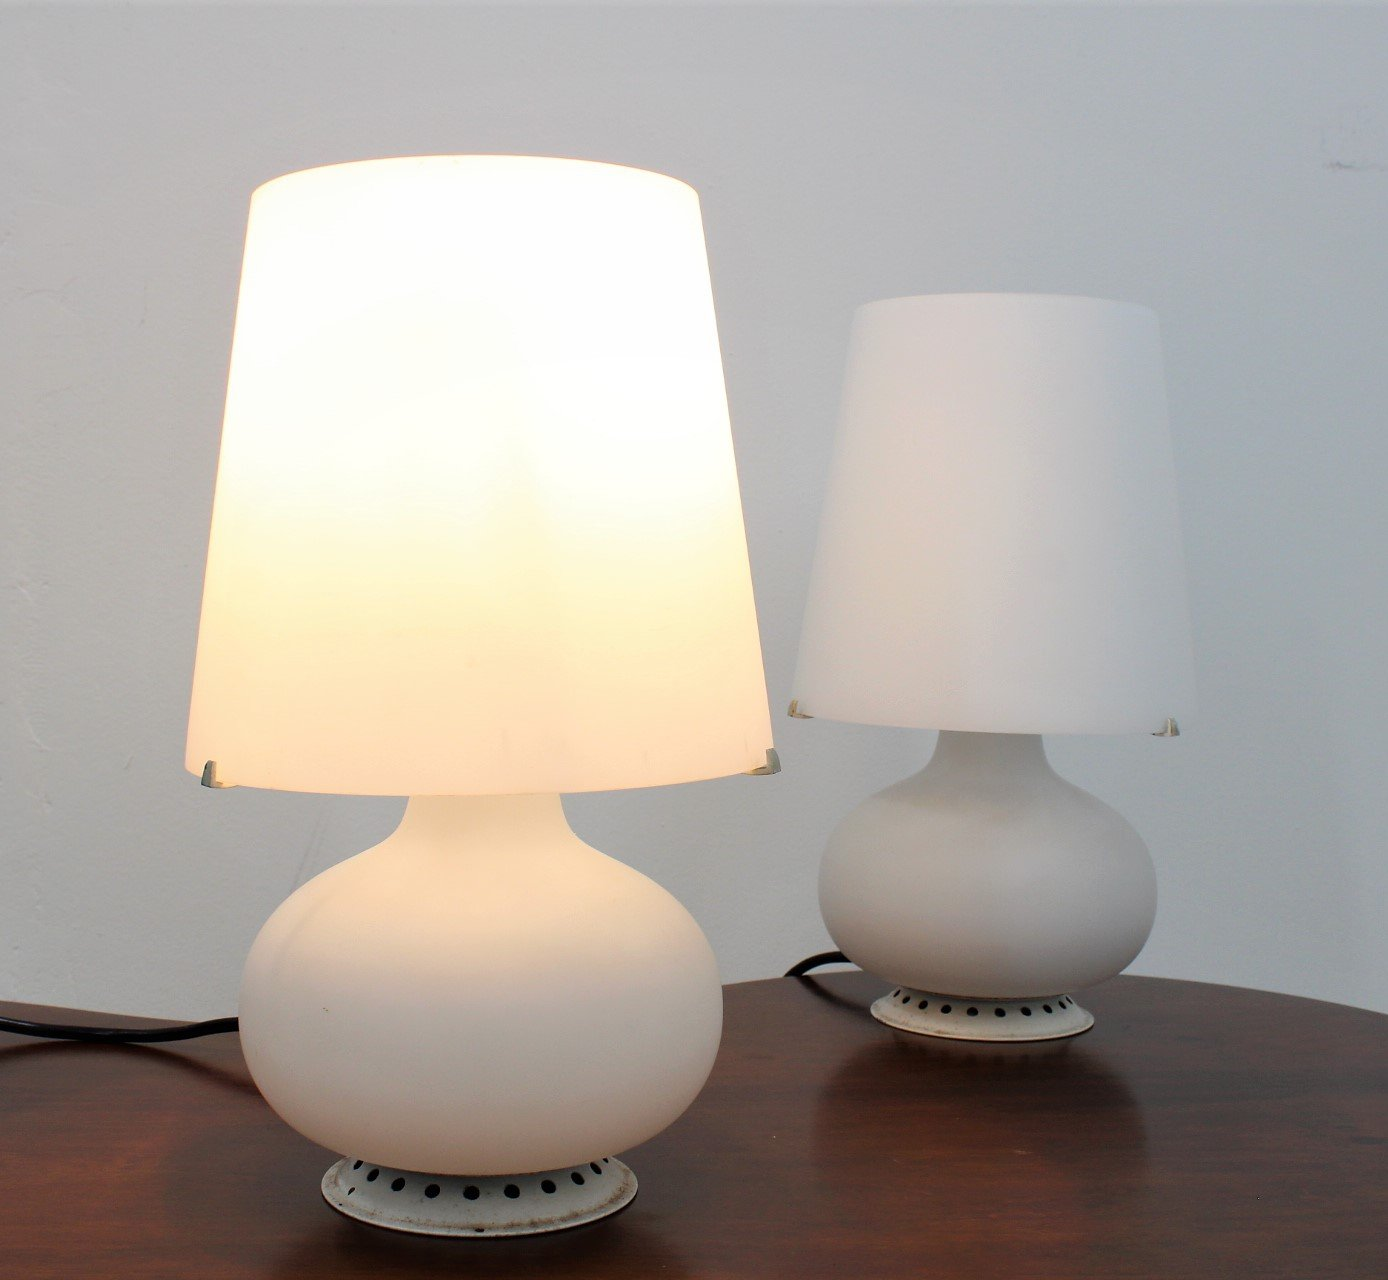 54589ee1a42 Vintage original table lamp by Max Ingrand for Fontana Arte